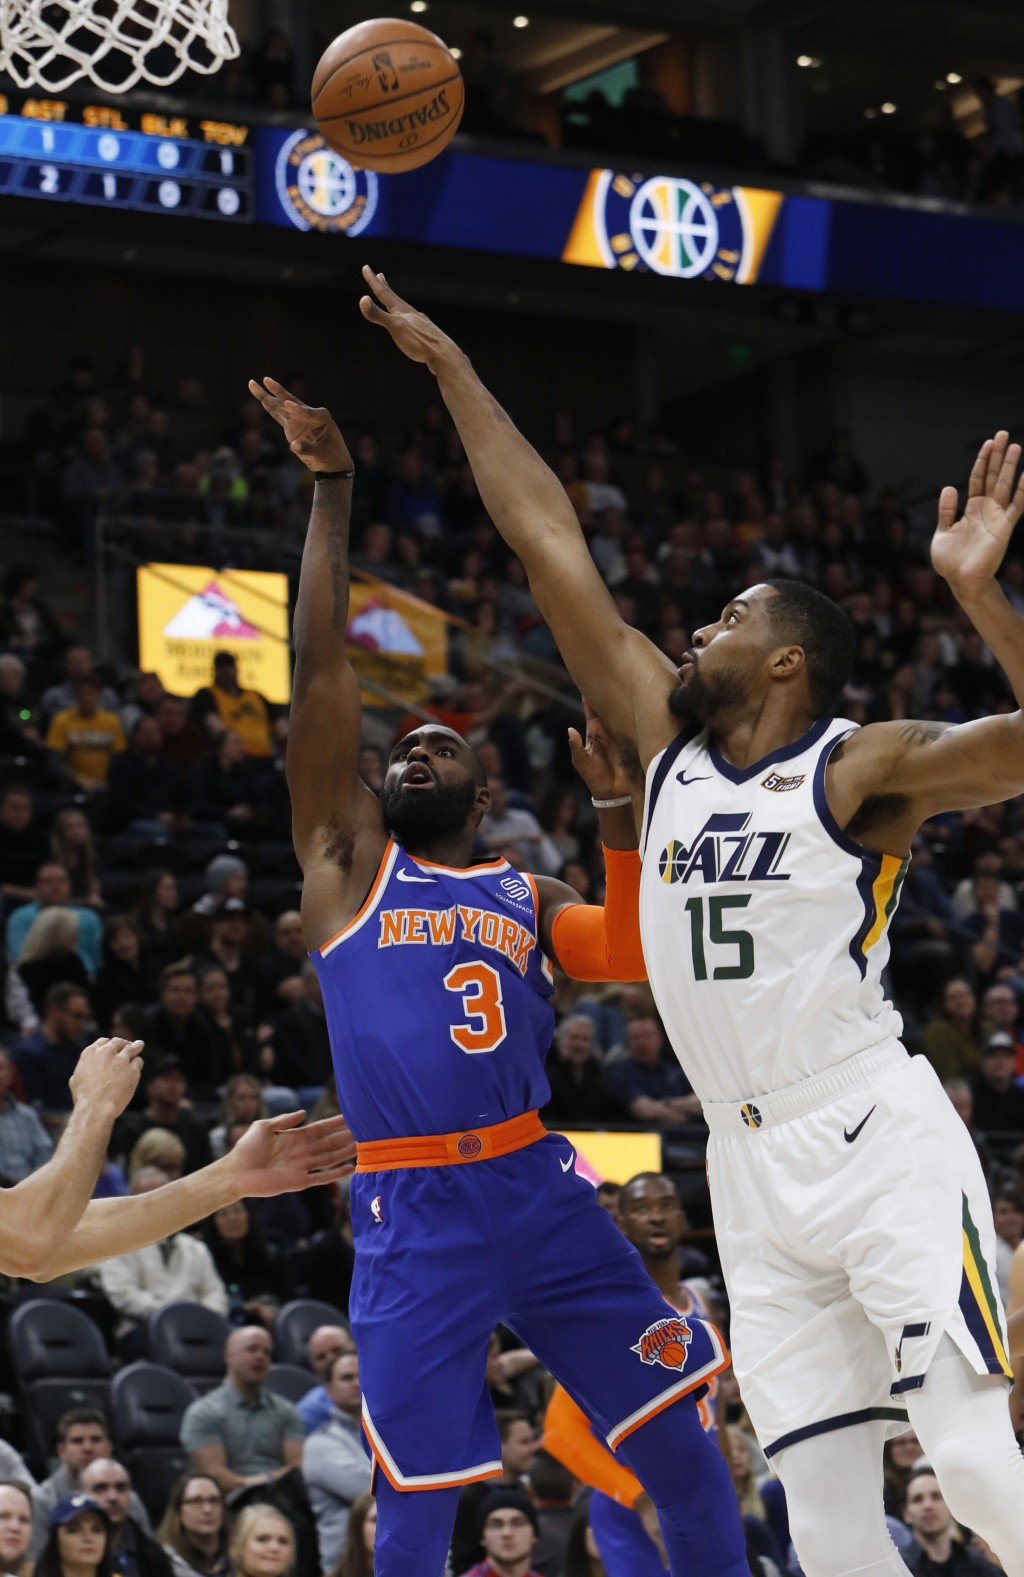 New York Knicks' Tim Hardaway Jr. (3) drives to the basket as Utah Jazz's Derrick Favors (15) defends in the first half of an NBA basketball game on S...